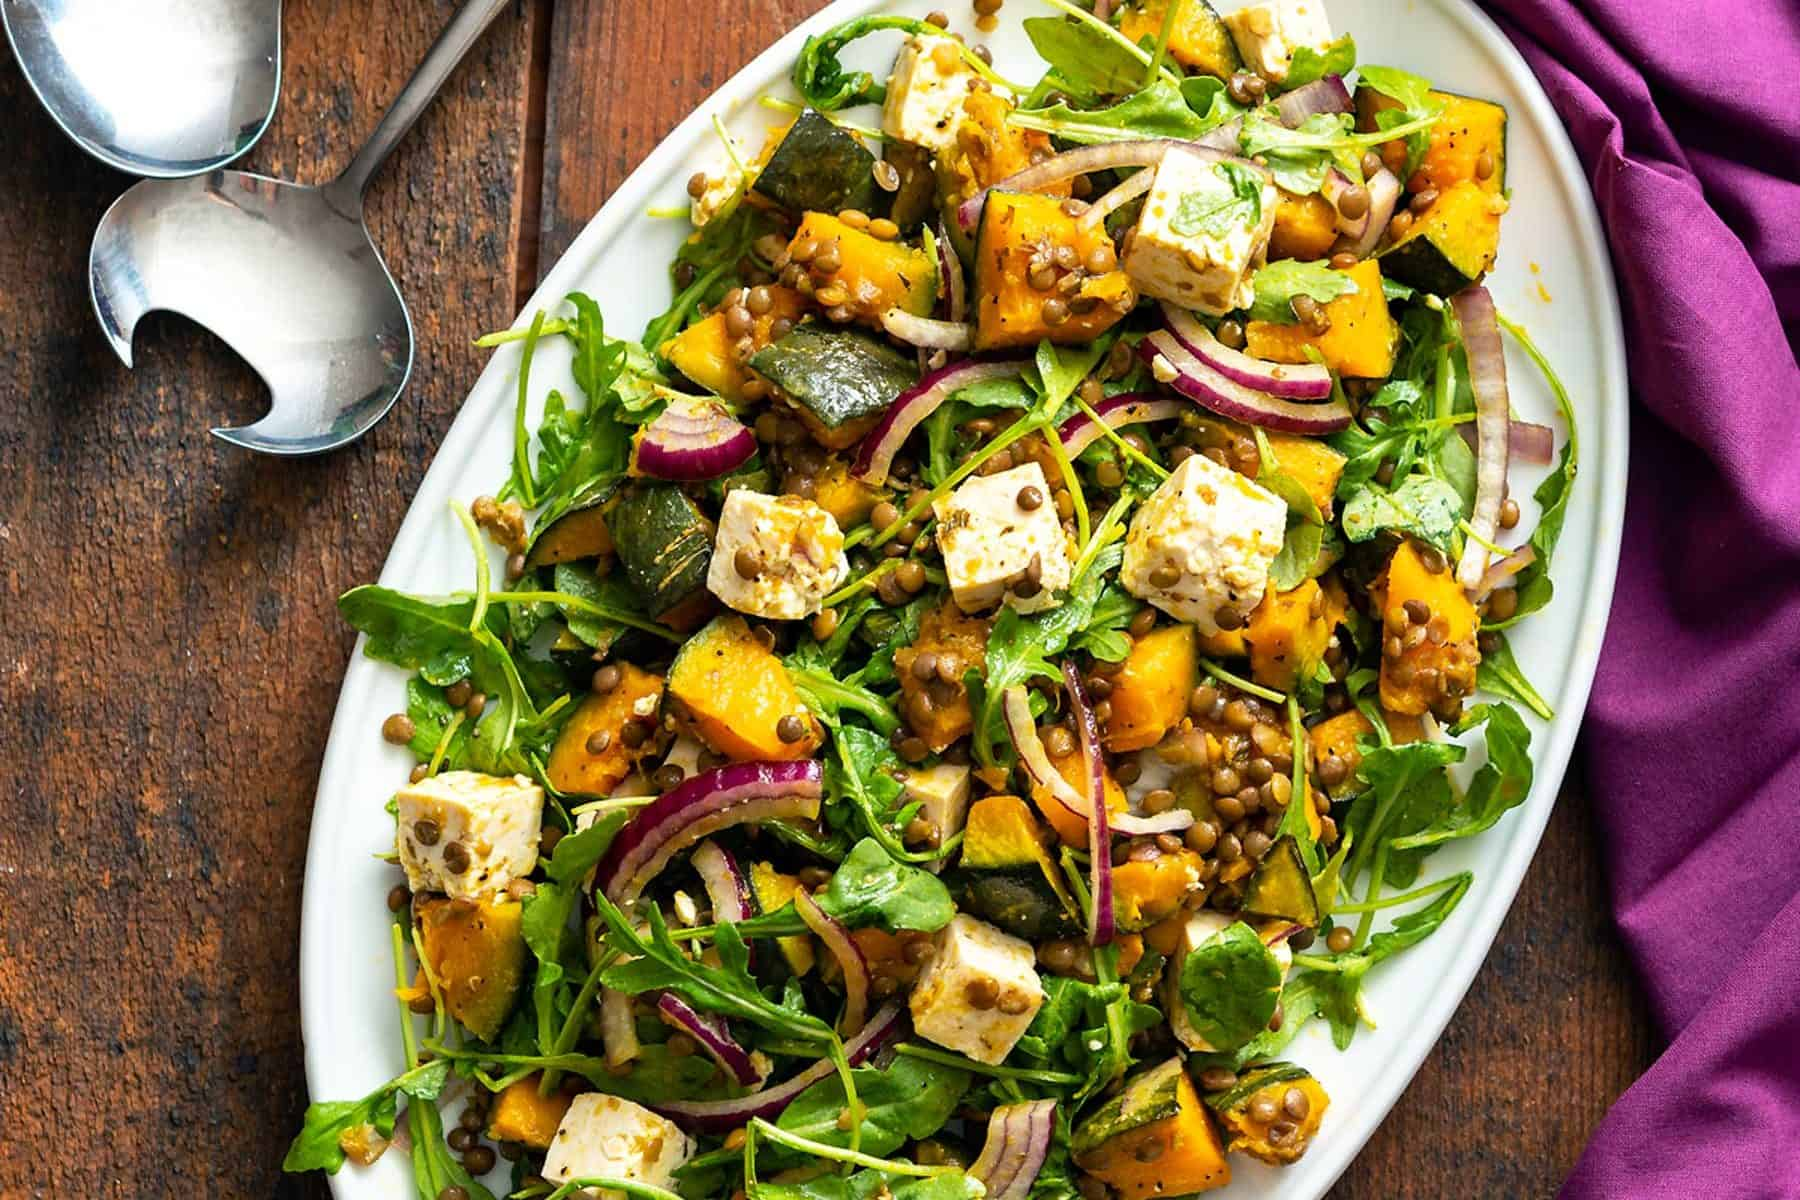 To ring in the season, I've finally brought a squash recipe to the table! (No pun intended) This Kabocha Squash Feta Salad is booming with flavor and color. #vegan #glutenfree